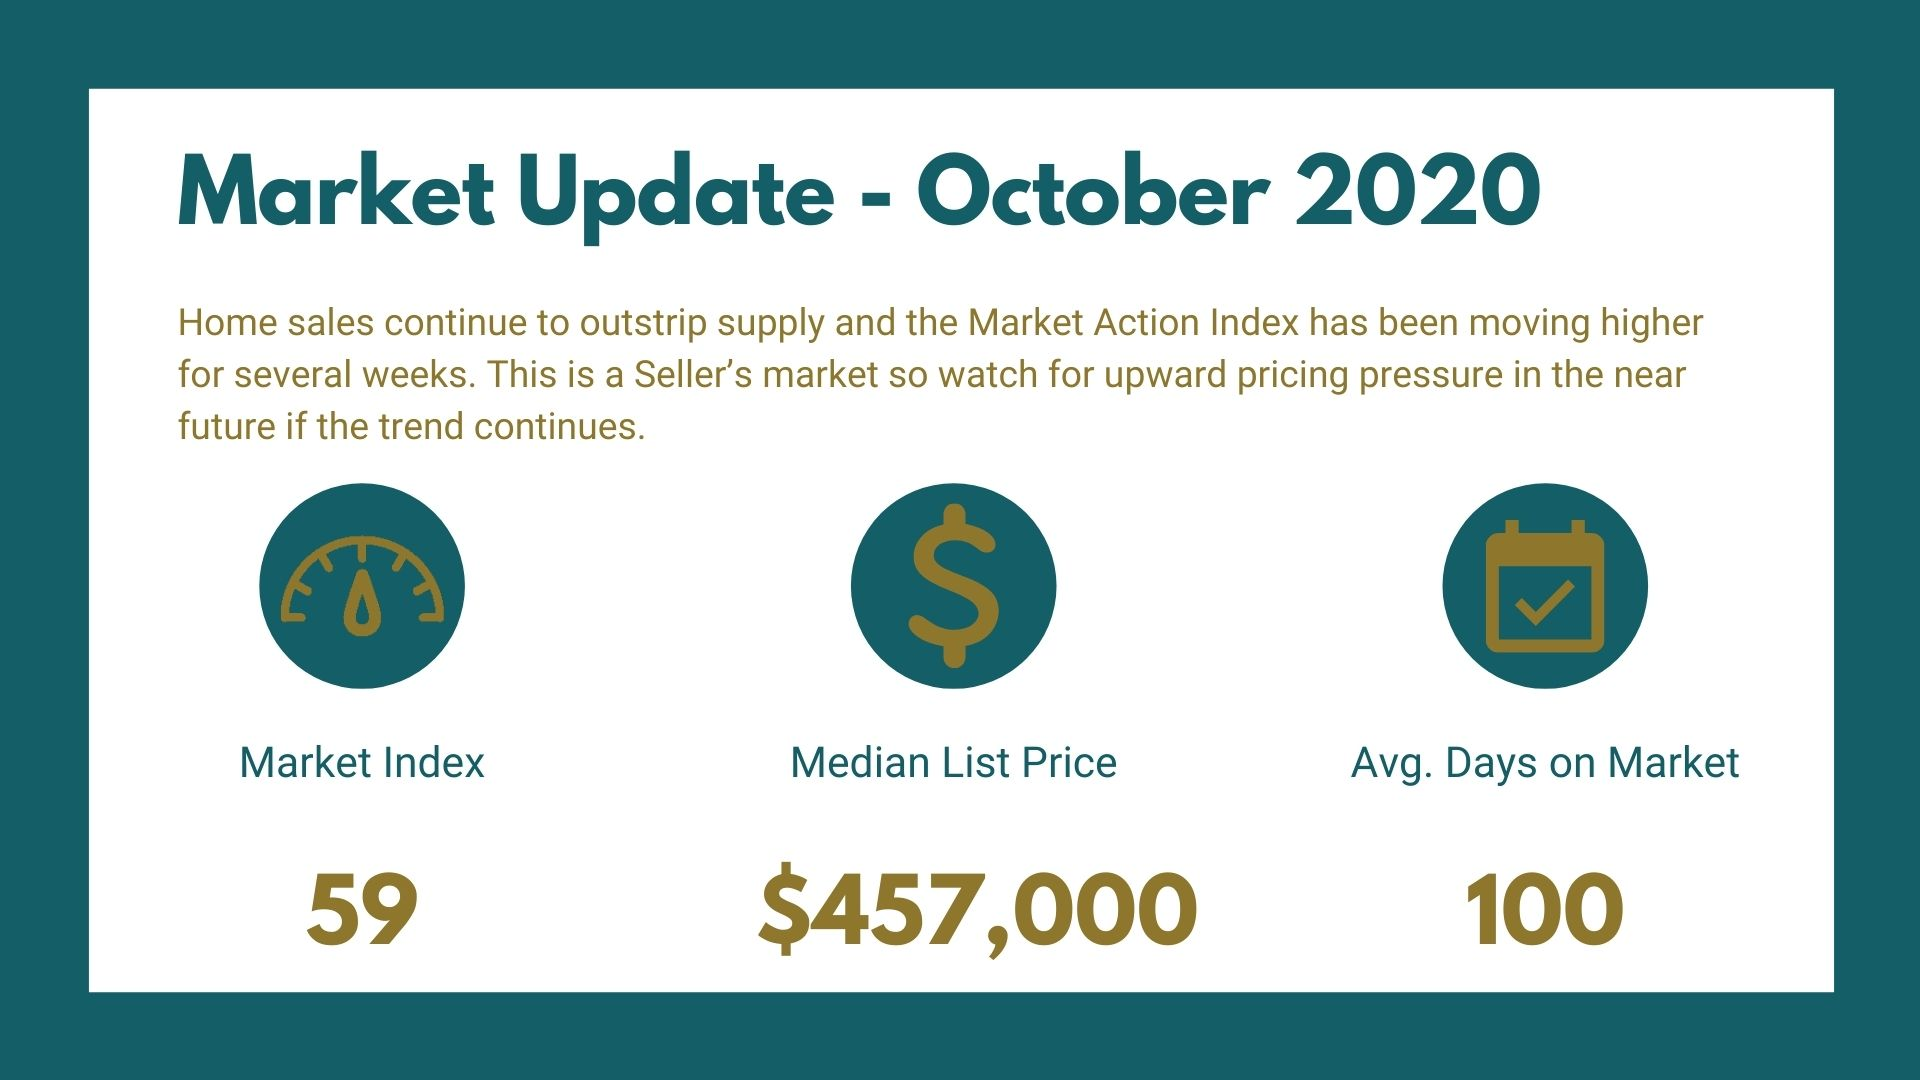 Fruita Market Report - October 2020